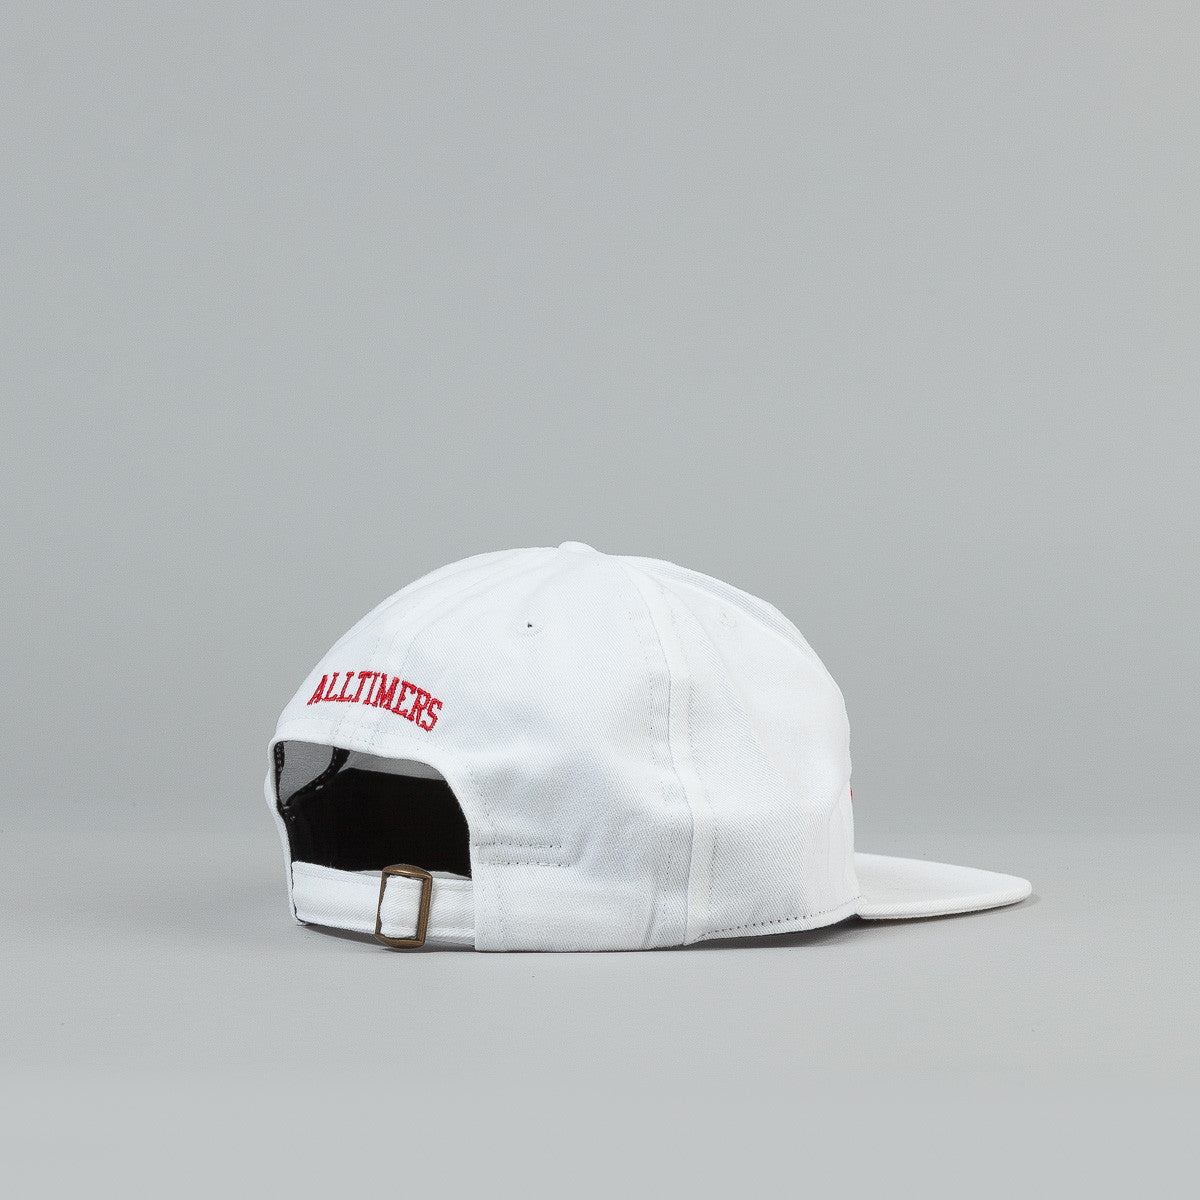 Alltimers Norm Cap - White / Red